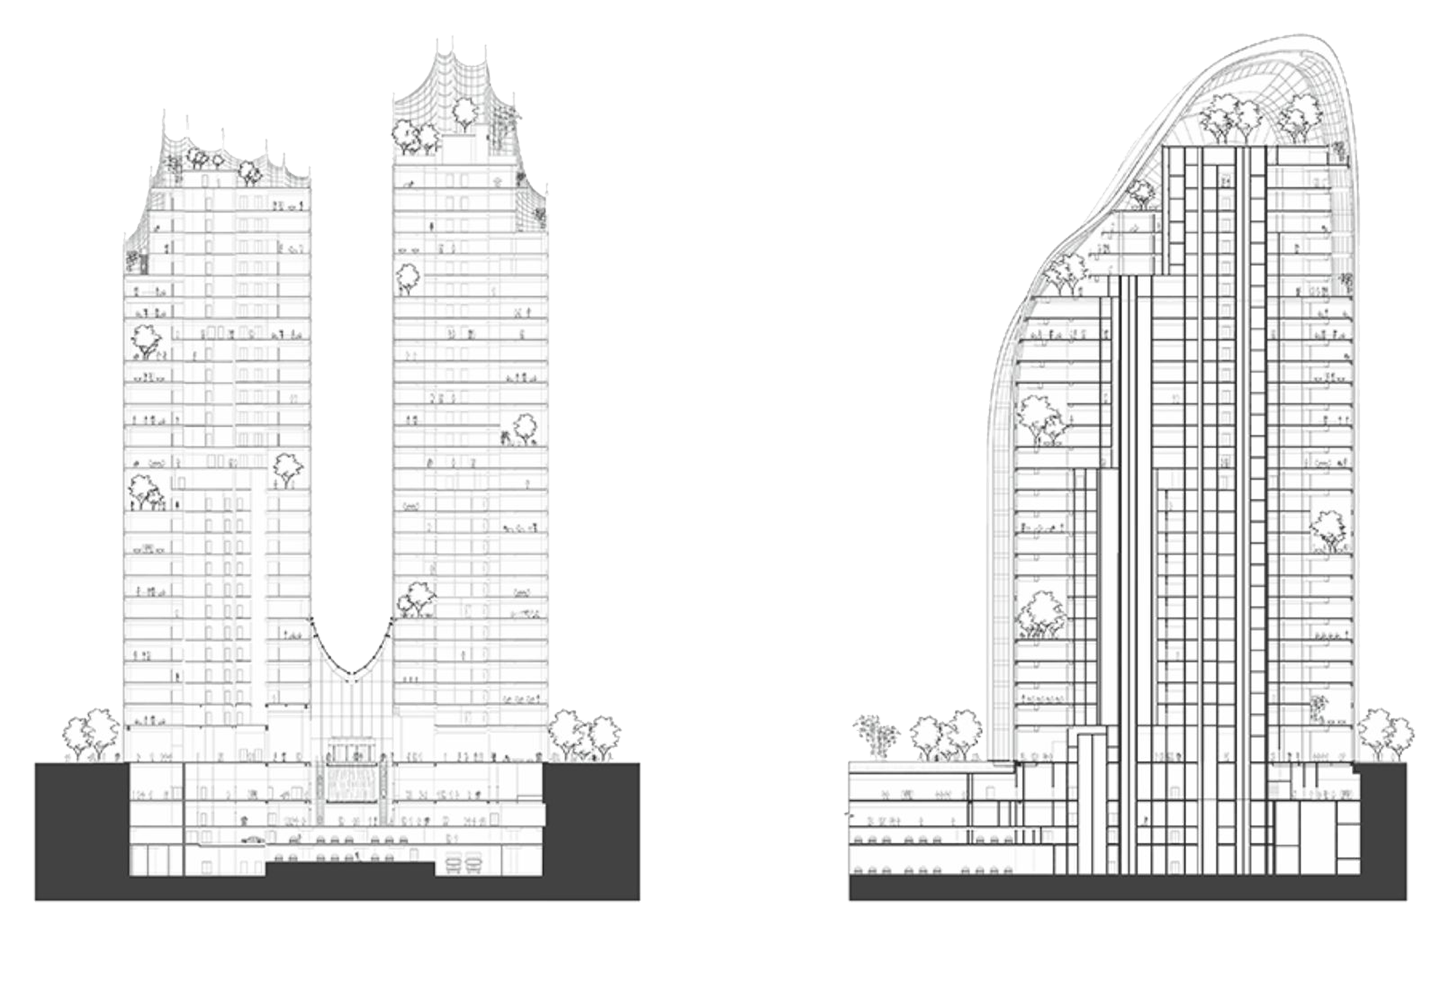 Breaks-Ground-Chaoyang-Park-Plaza-by-MAD-10.png